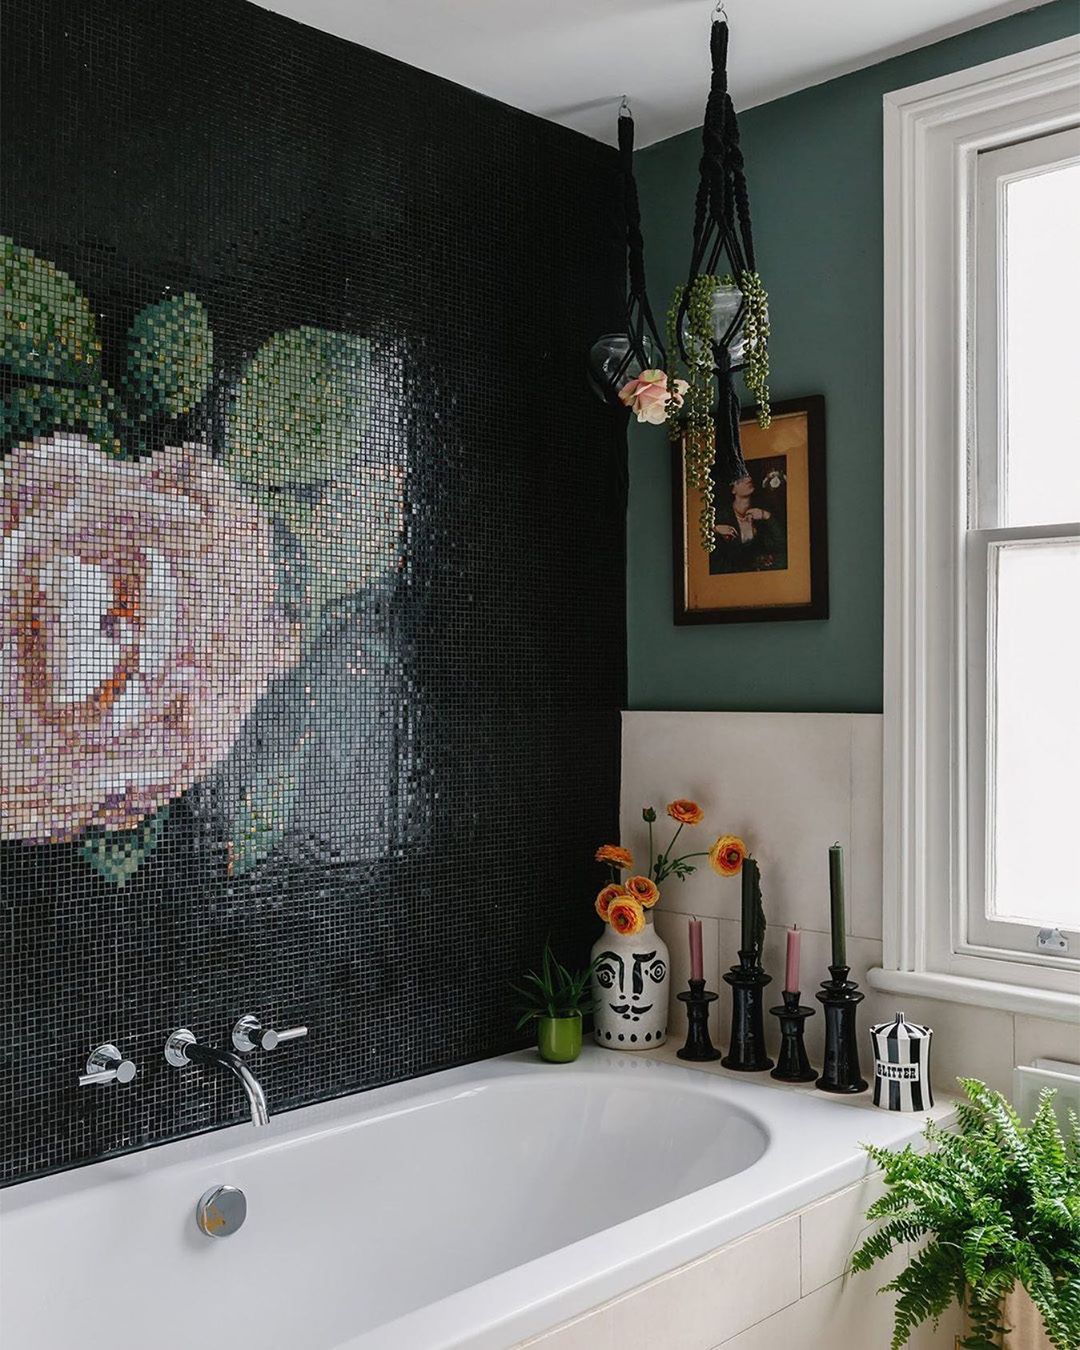 Bathroom Goals: You Need to See This Gorgeous Tile Mosaic